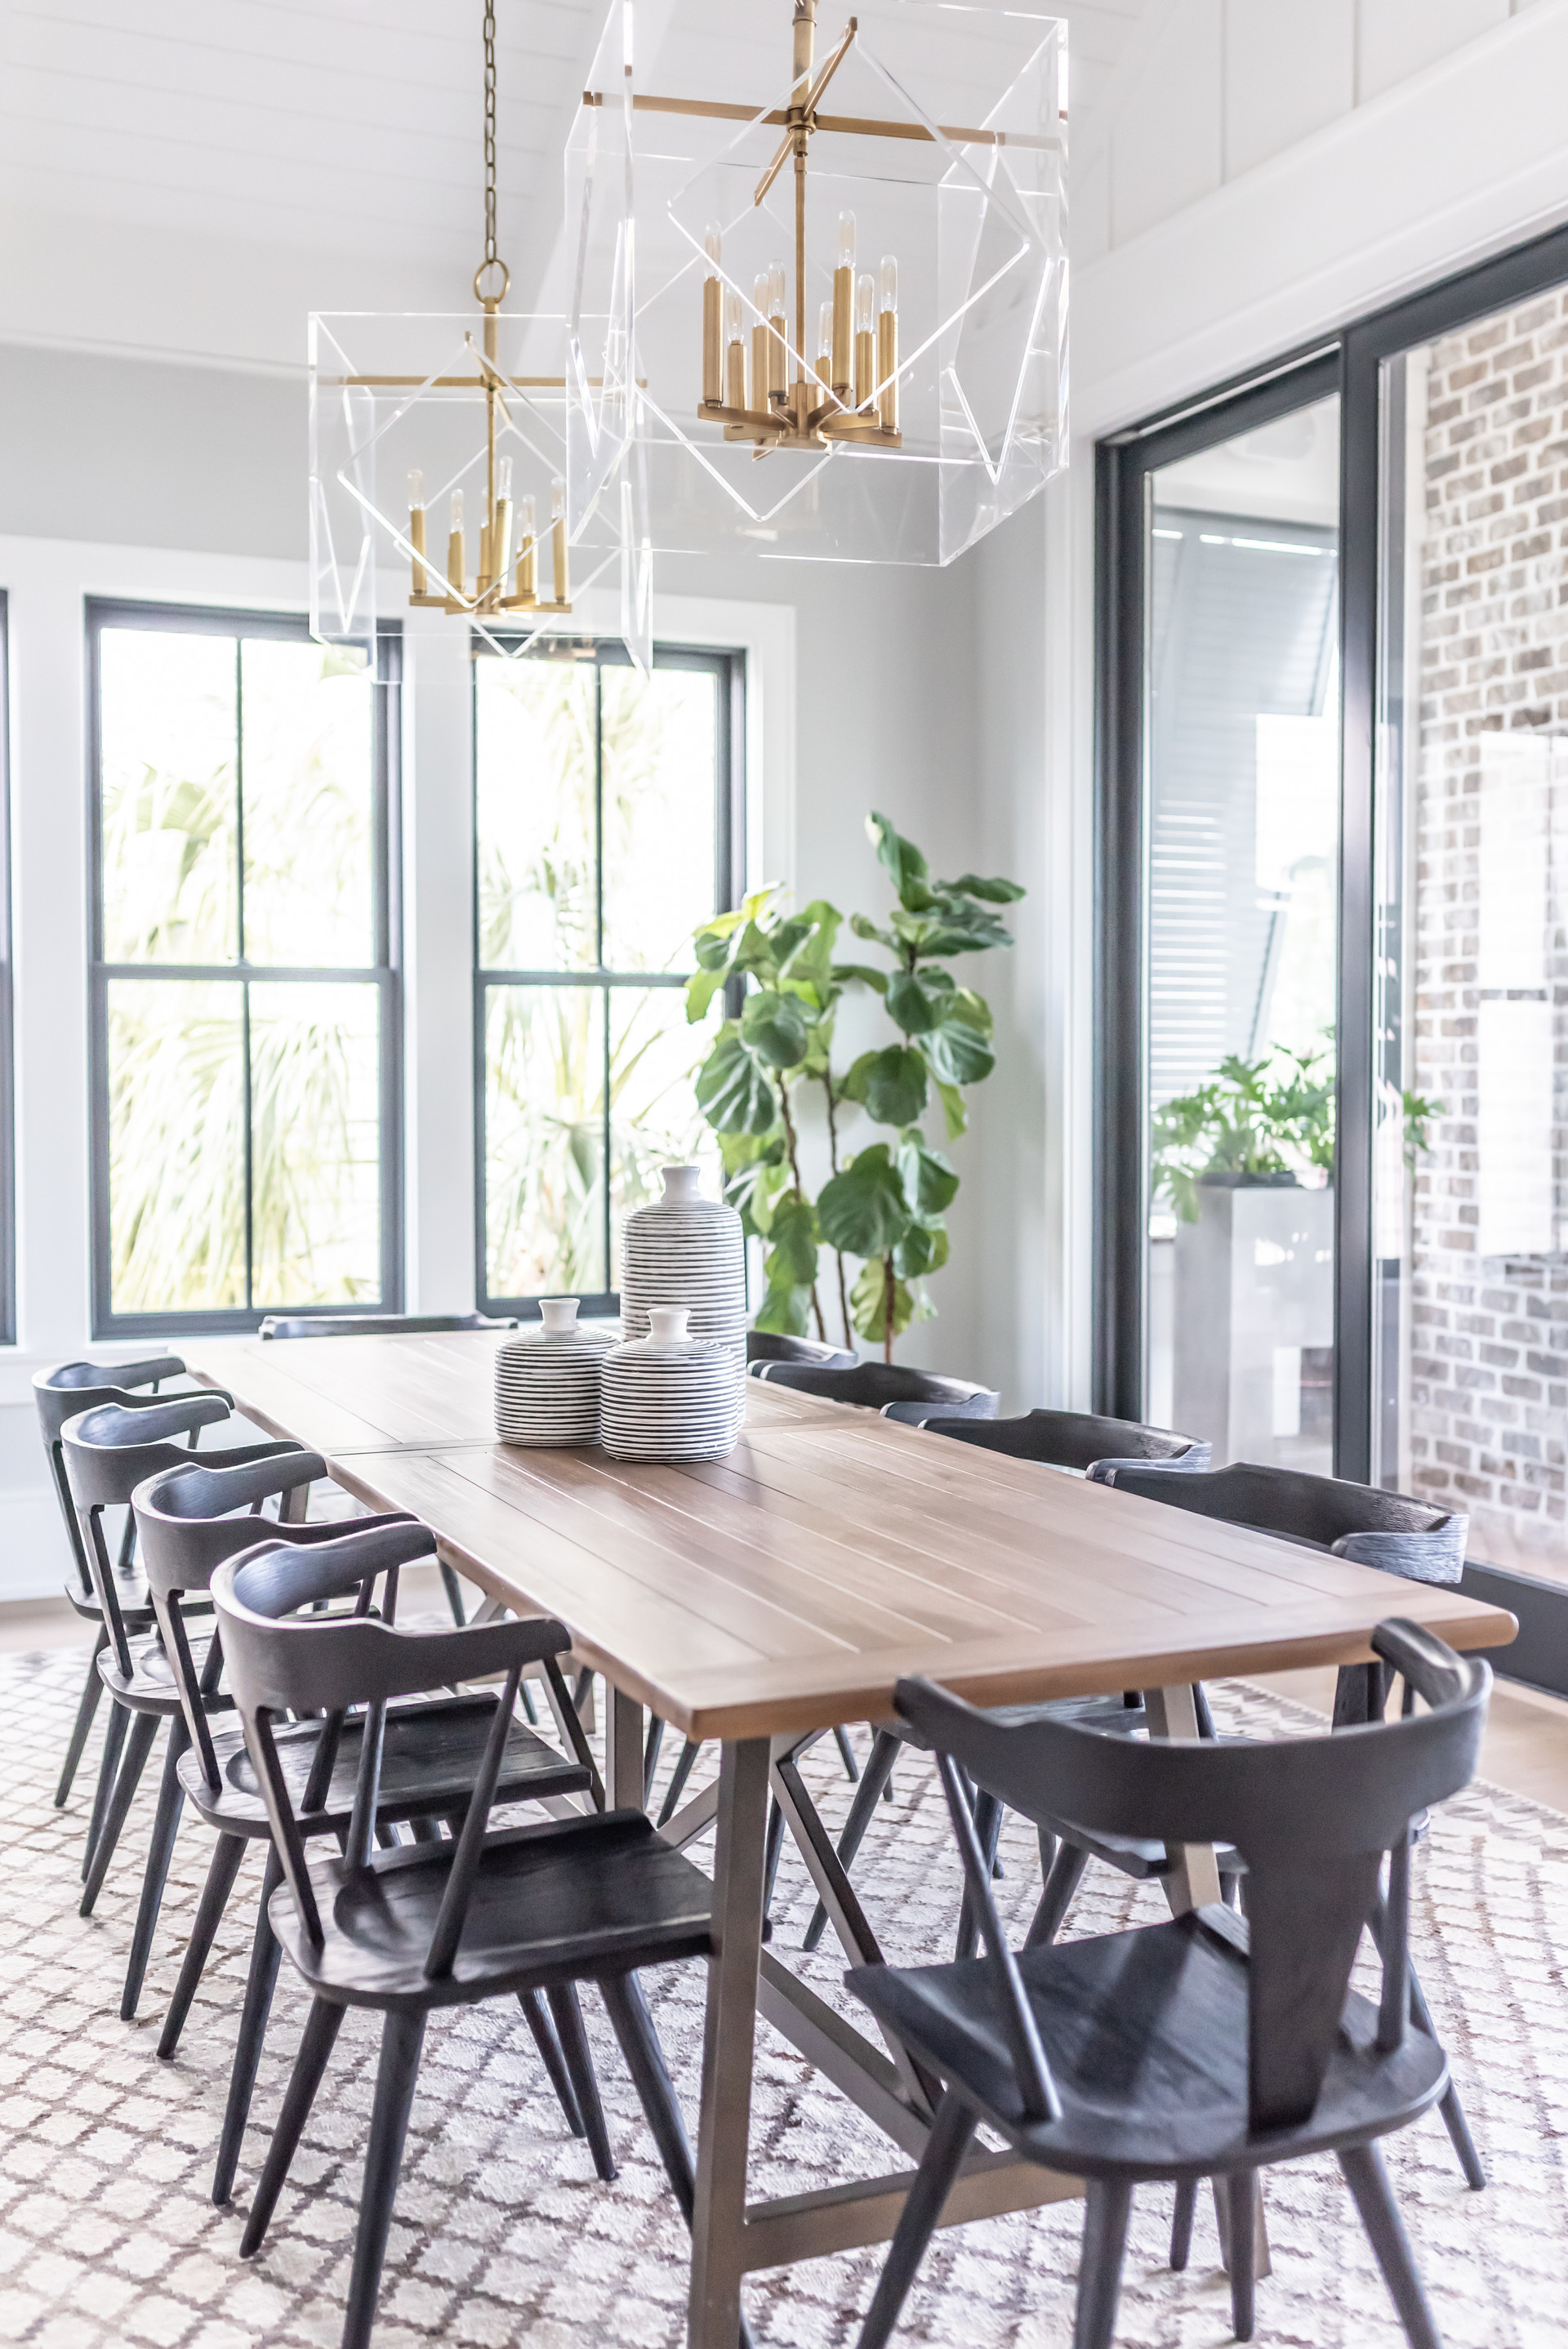 ADC-May1-2019-Dining-Room-5.jpg